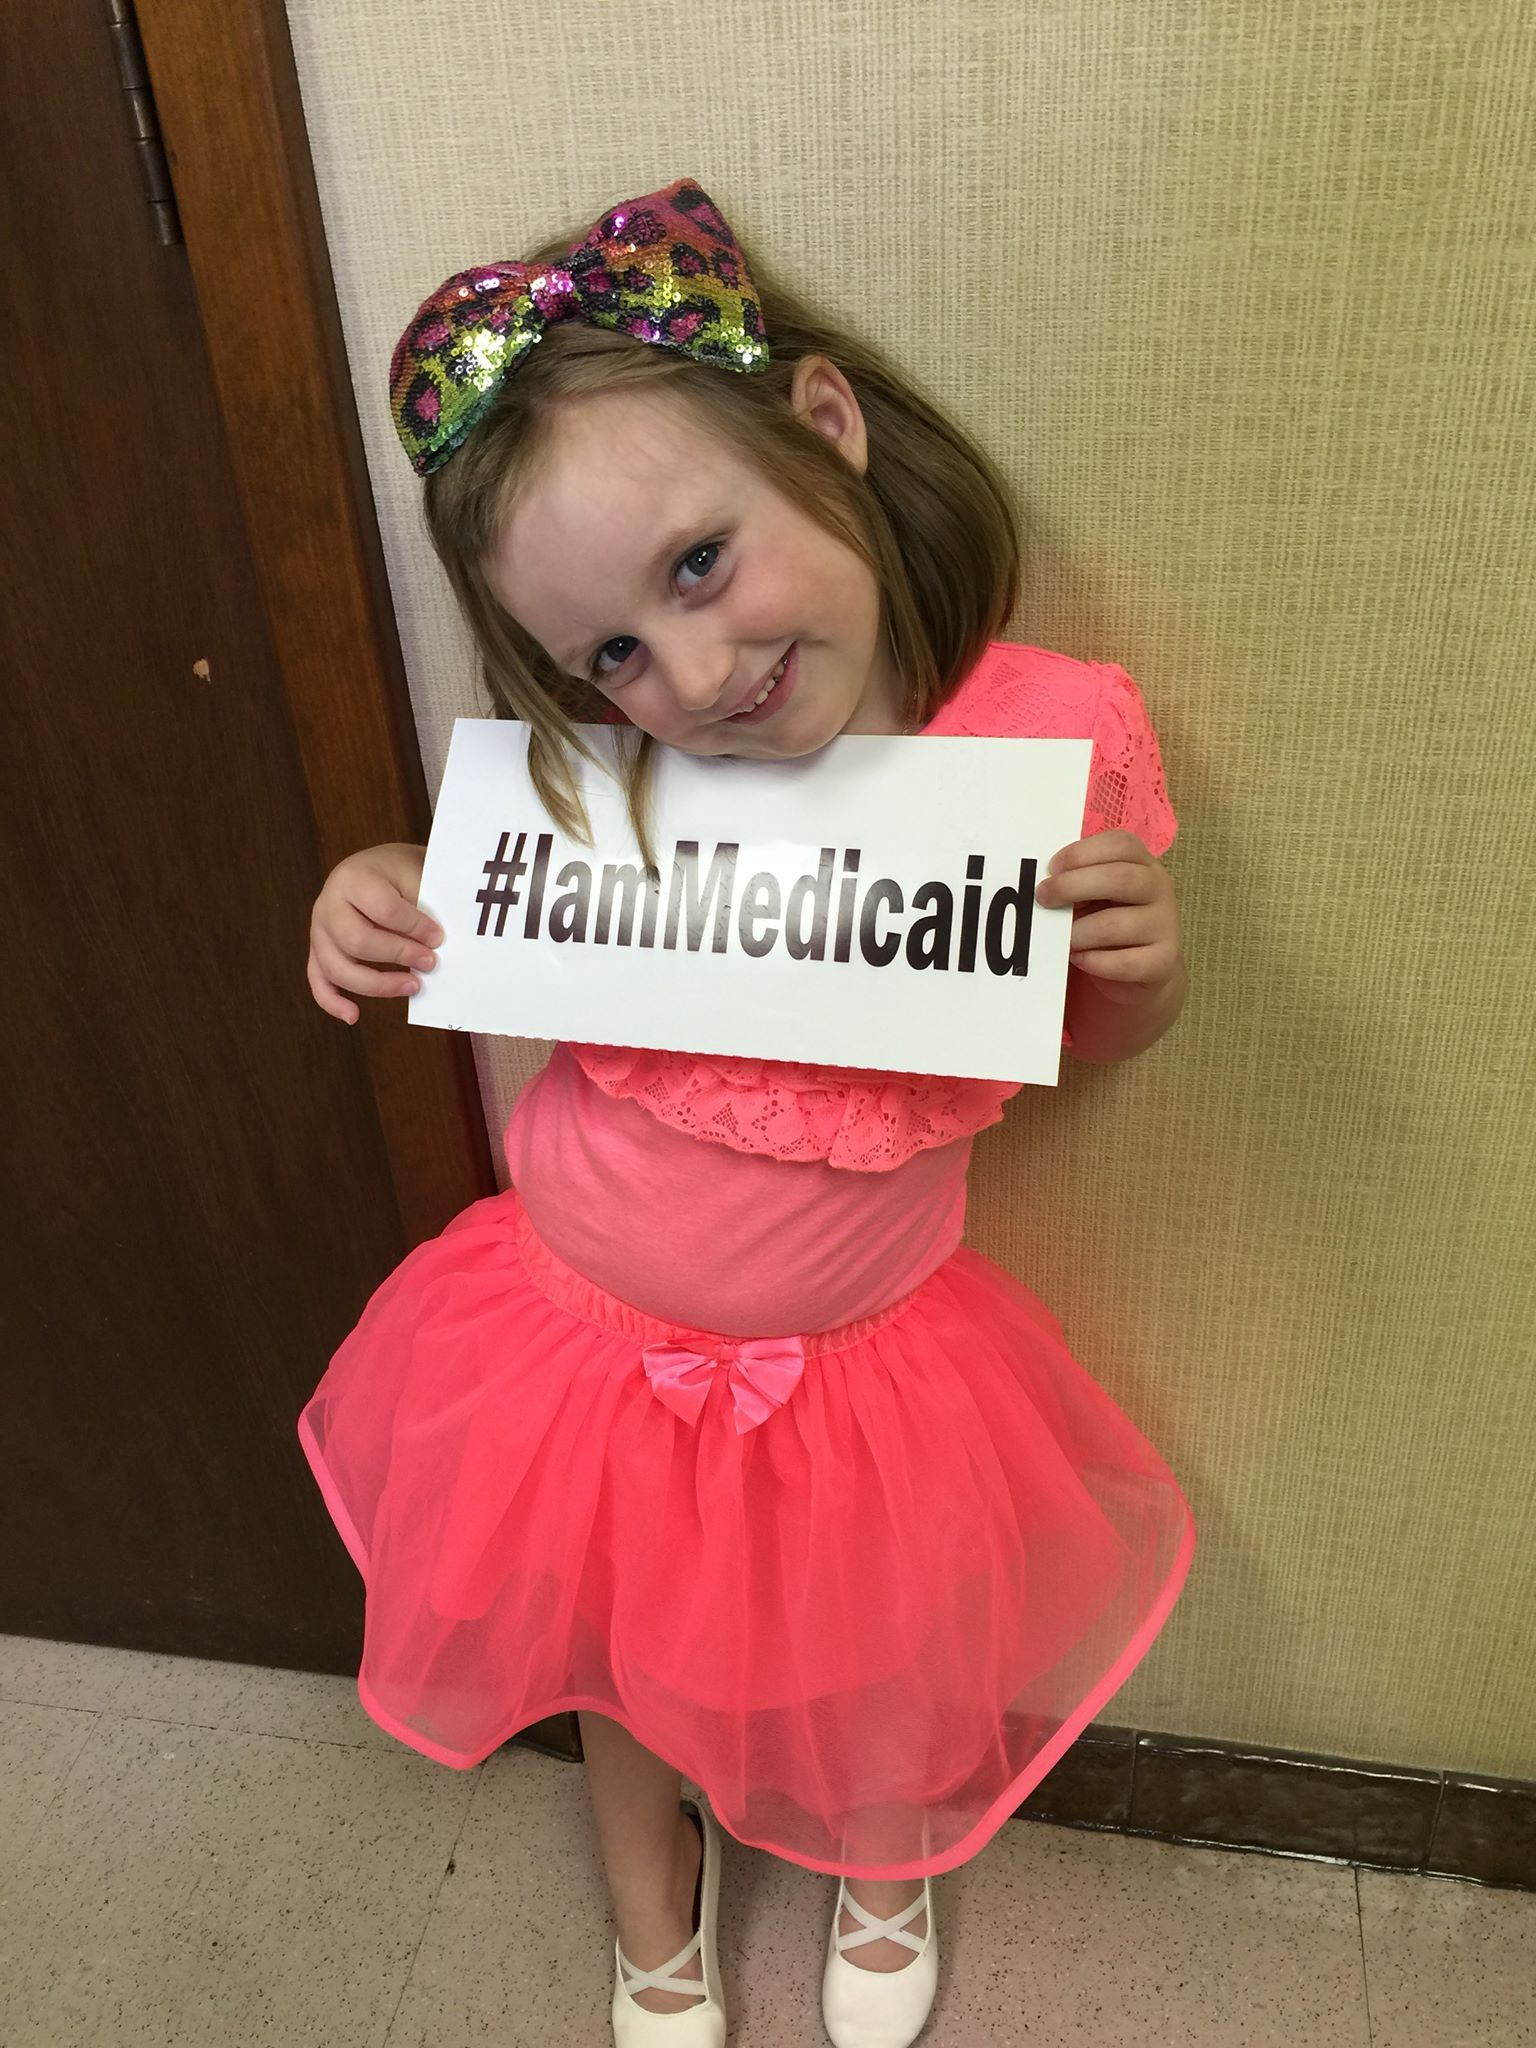 I have yucky allergies. Thank you Medicaid for my medications. #‎IamMedicaid